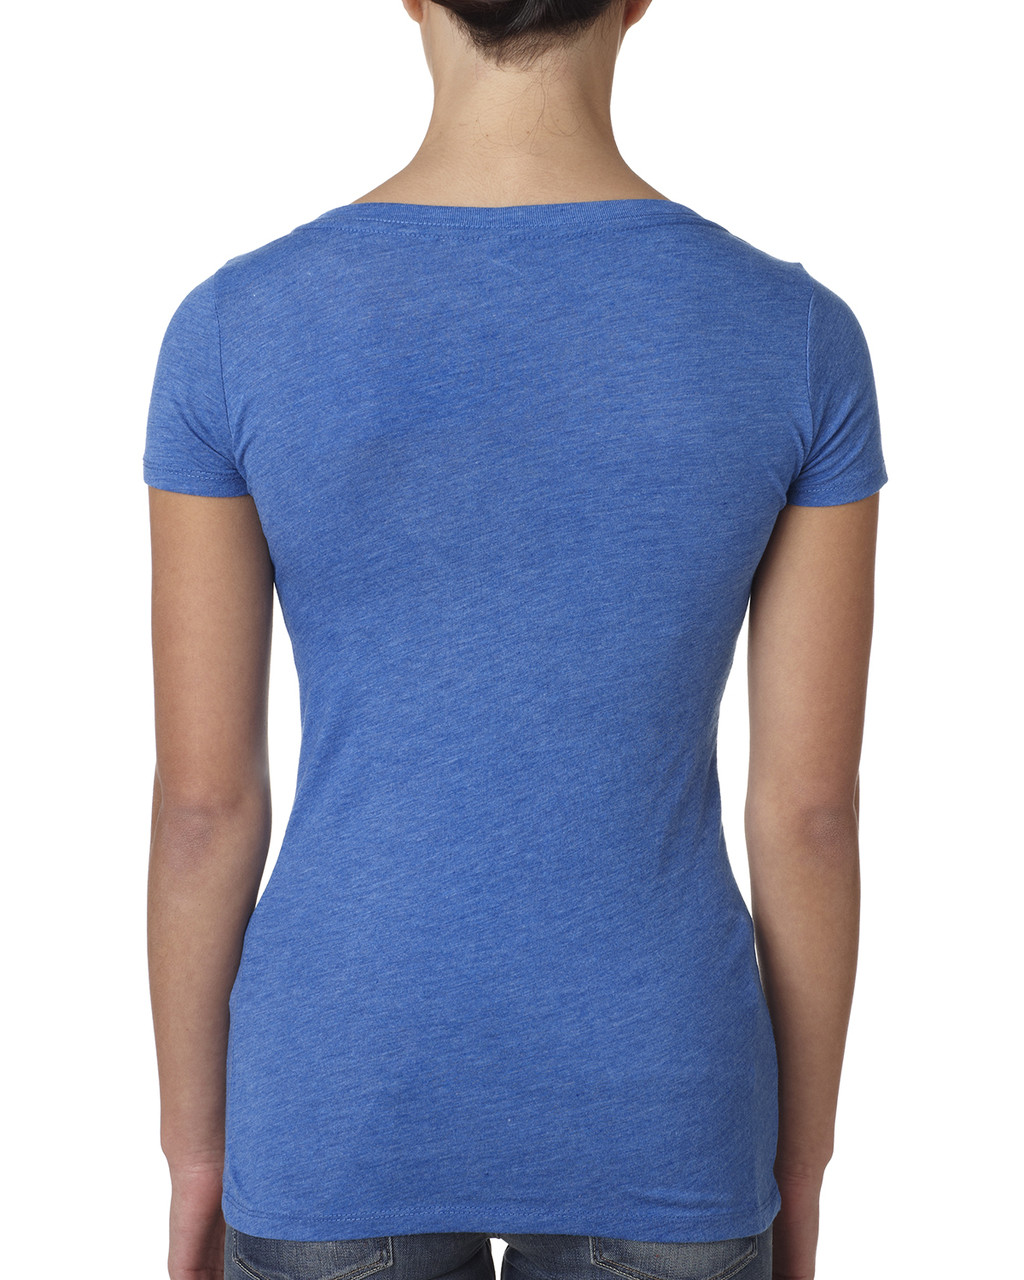 Vintage Royal - back 6730 Next Level Ladies' Tri-Blend Scoop Tee | Blankclothing.ca